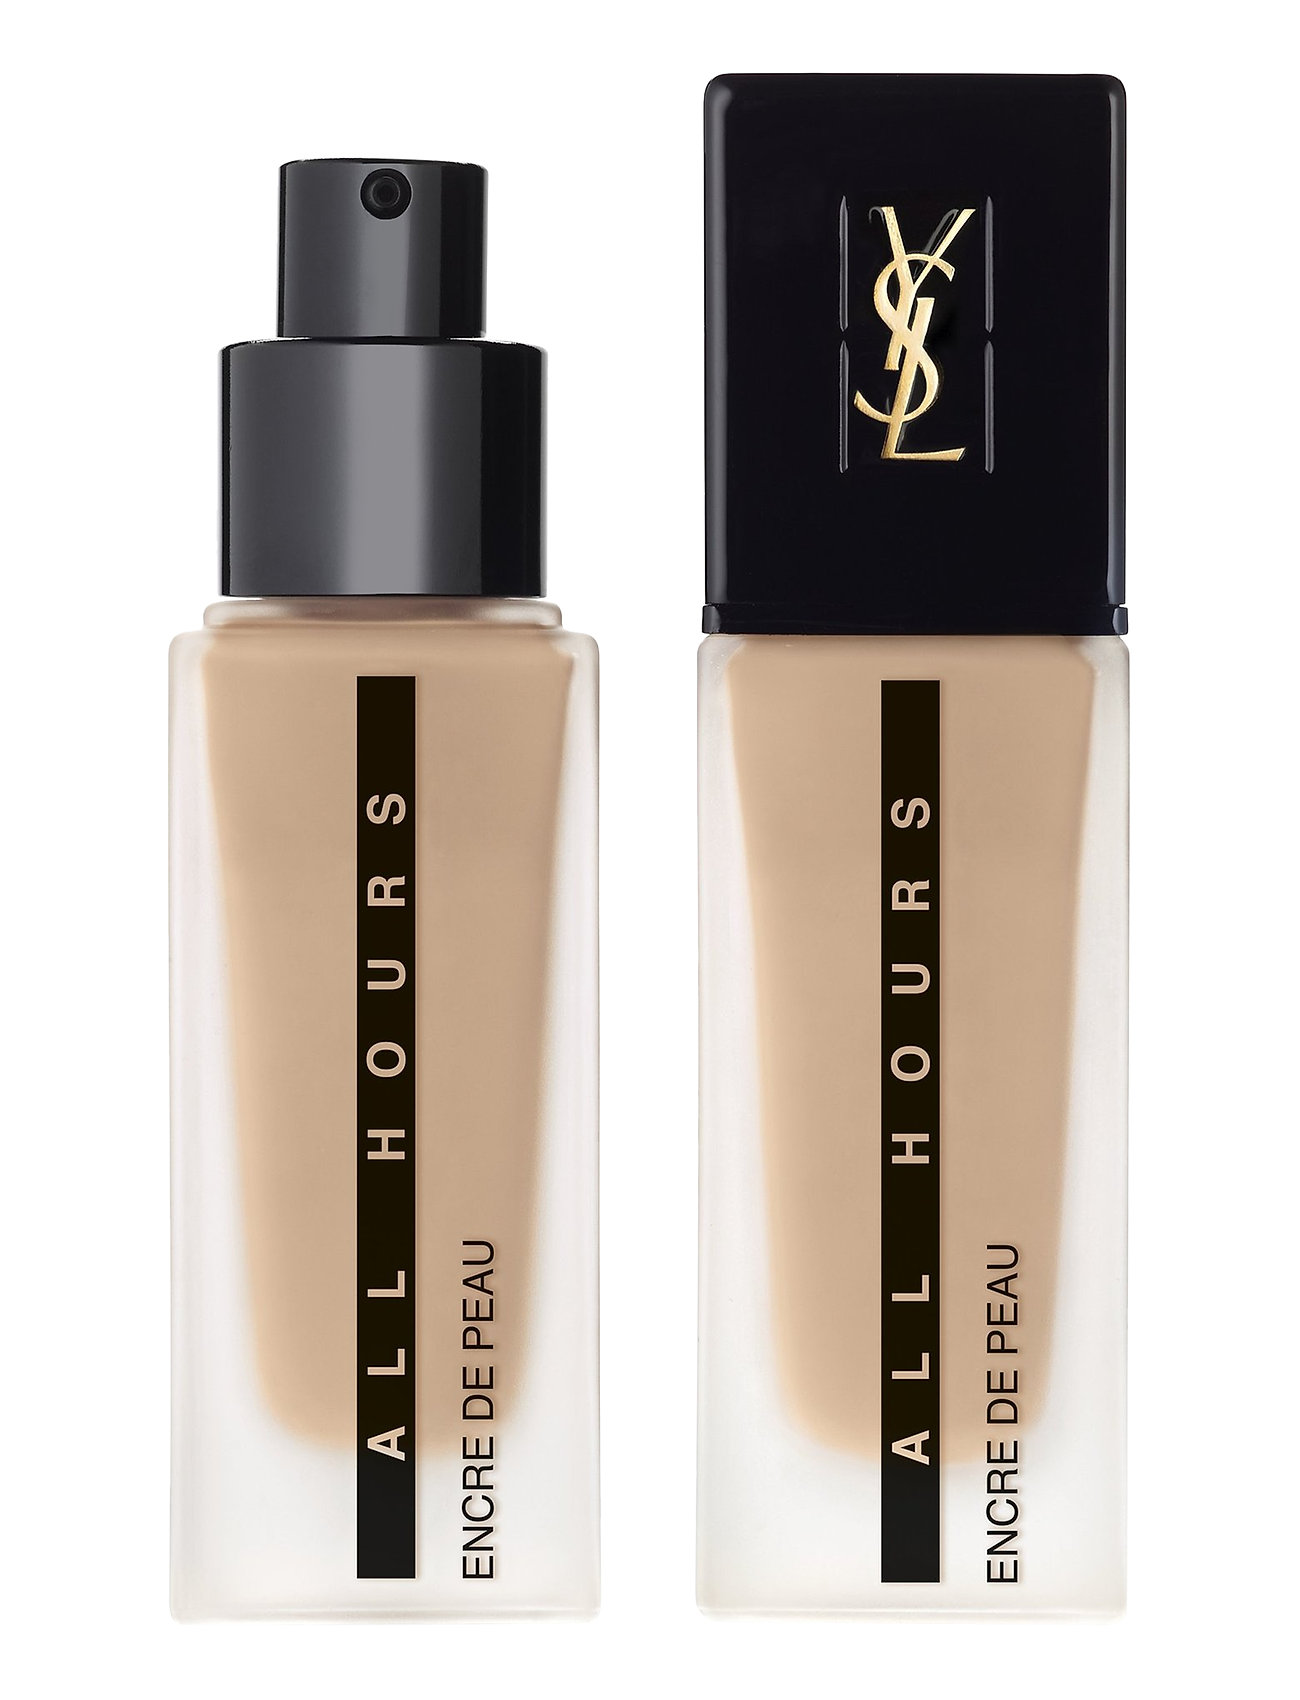 yves saint laurent – Encre de peau all hours b30 25 ml på boozt.com dk